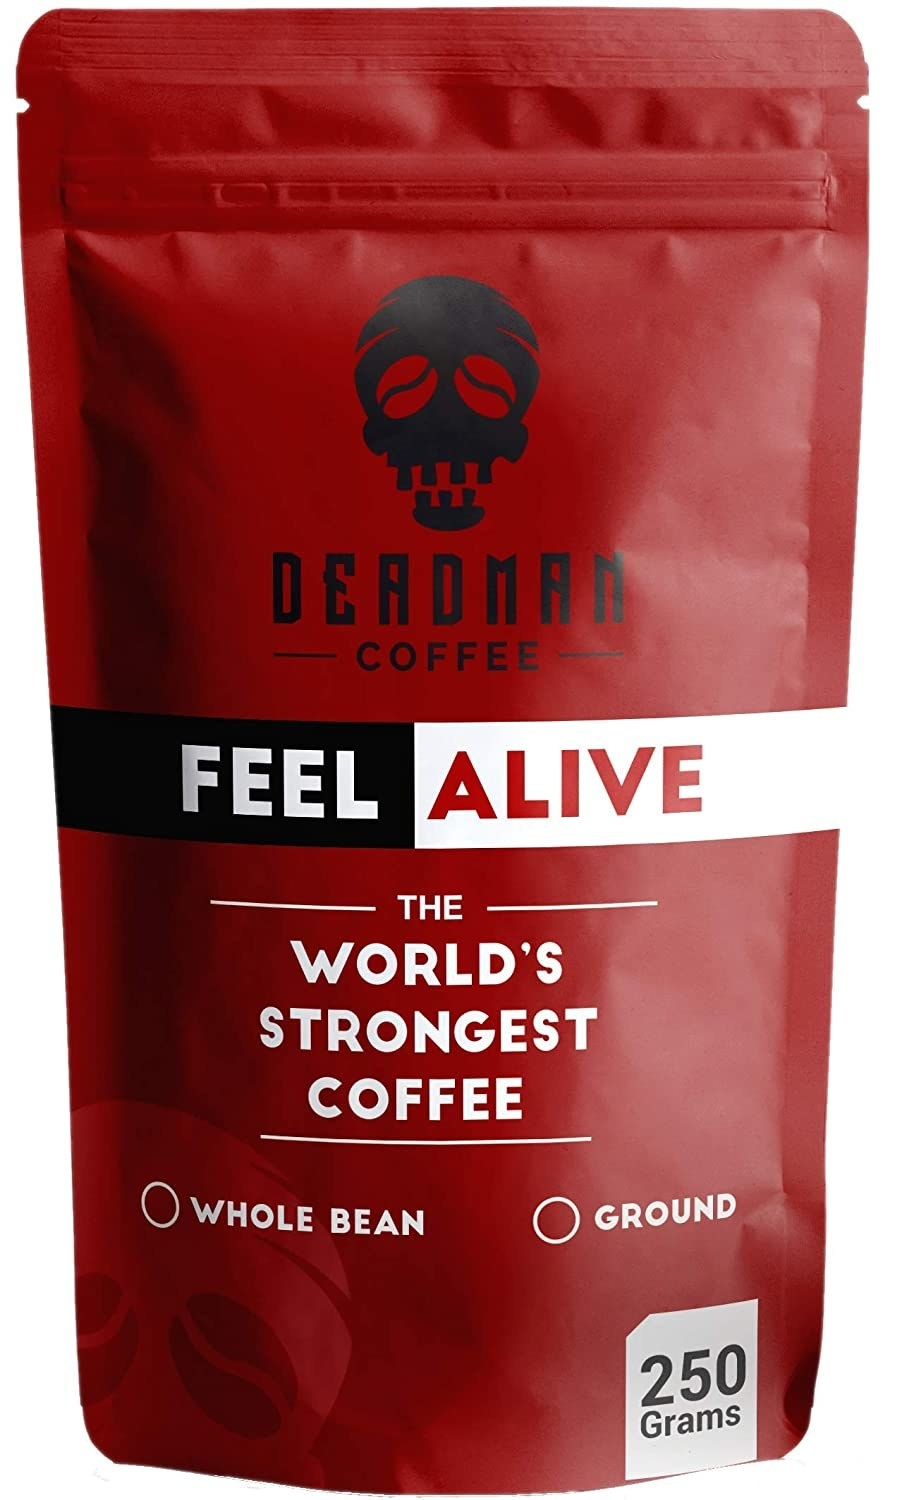 World's strongest coffee packaging